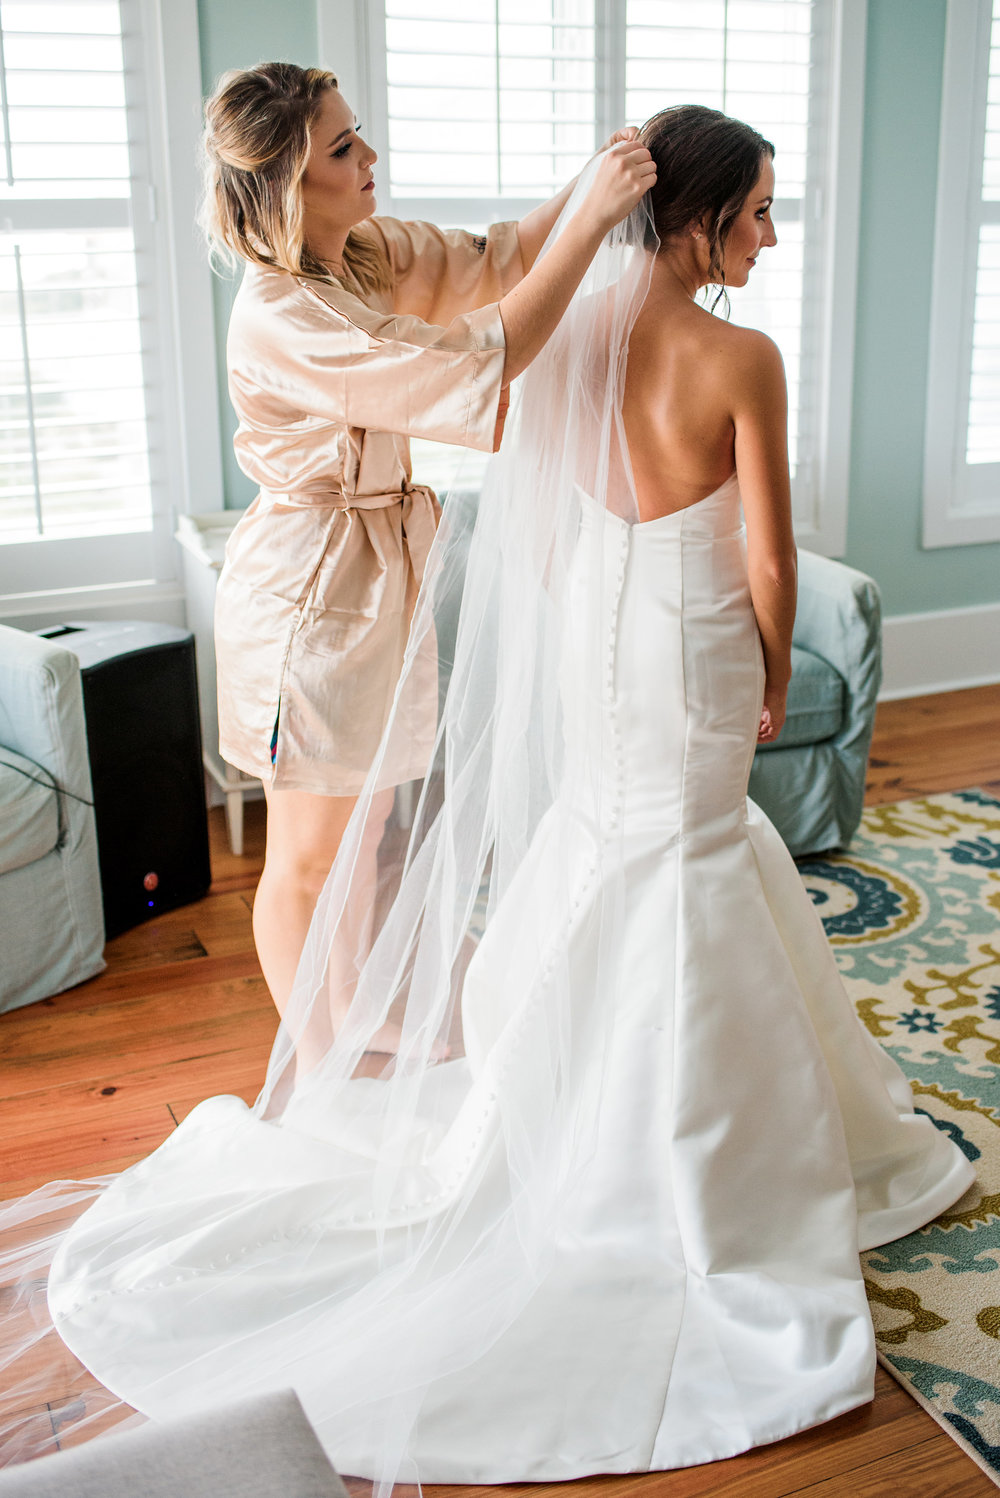 Santa Rosa Beach Wedding5.jpg